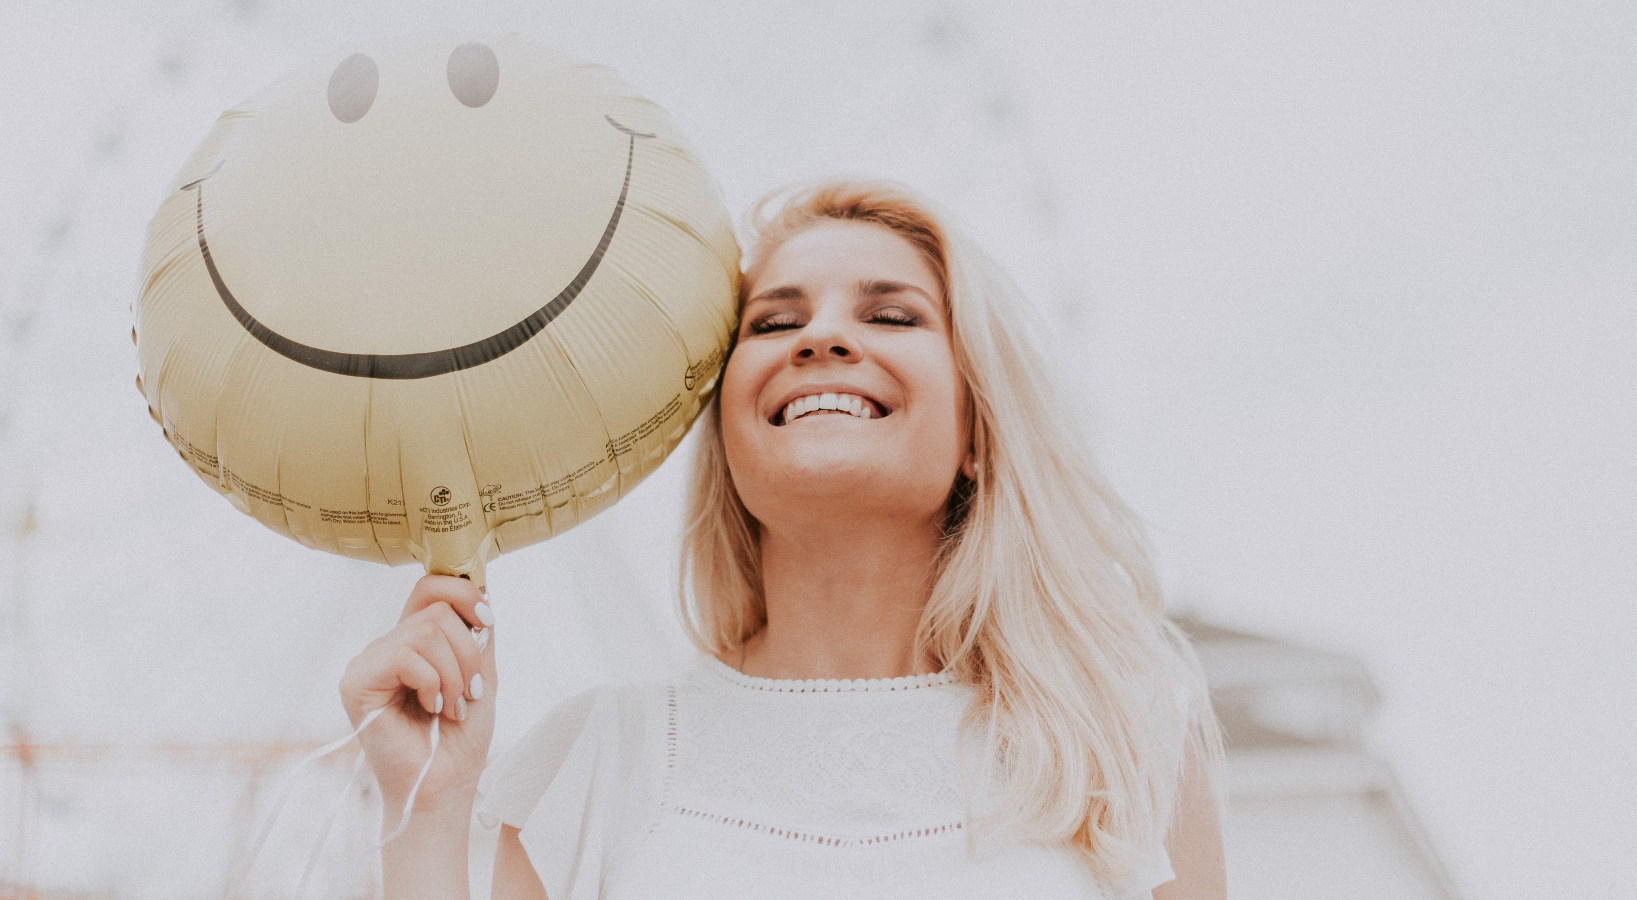 A woman smiling with a smiley face balloon